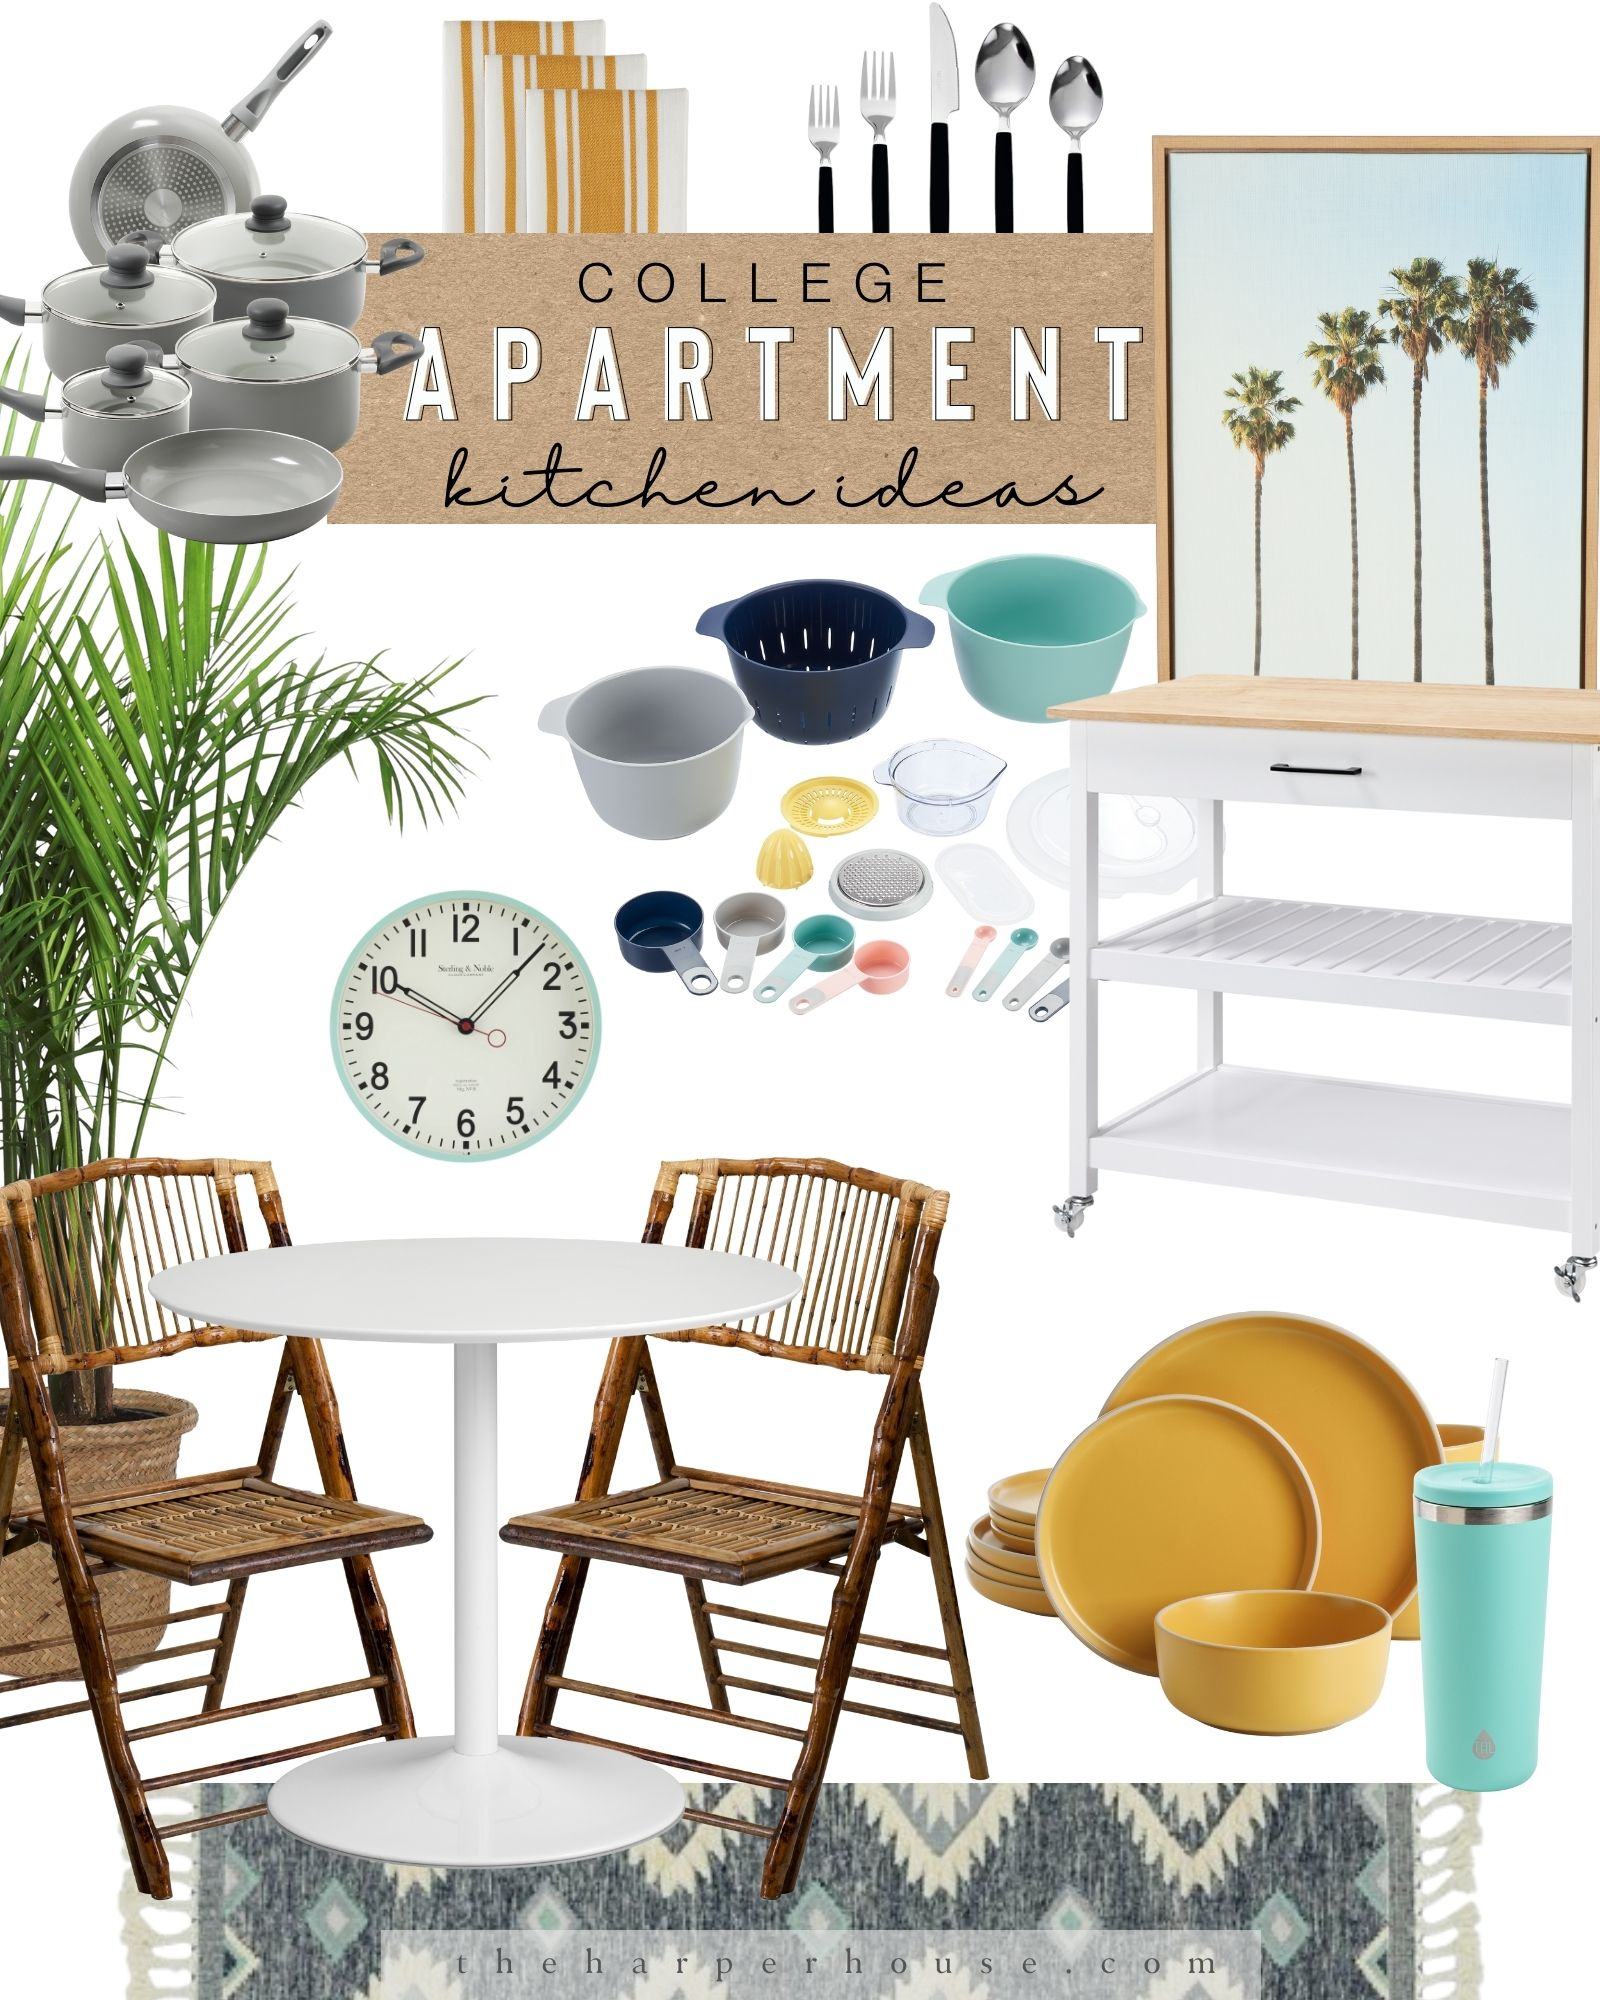 College essentials for your kitchen apartment featuring a small dining table, kitchen runner, cheap dishes, pots and pans, and rolling cart / bar cart